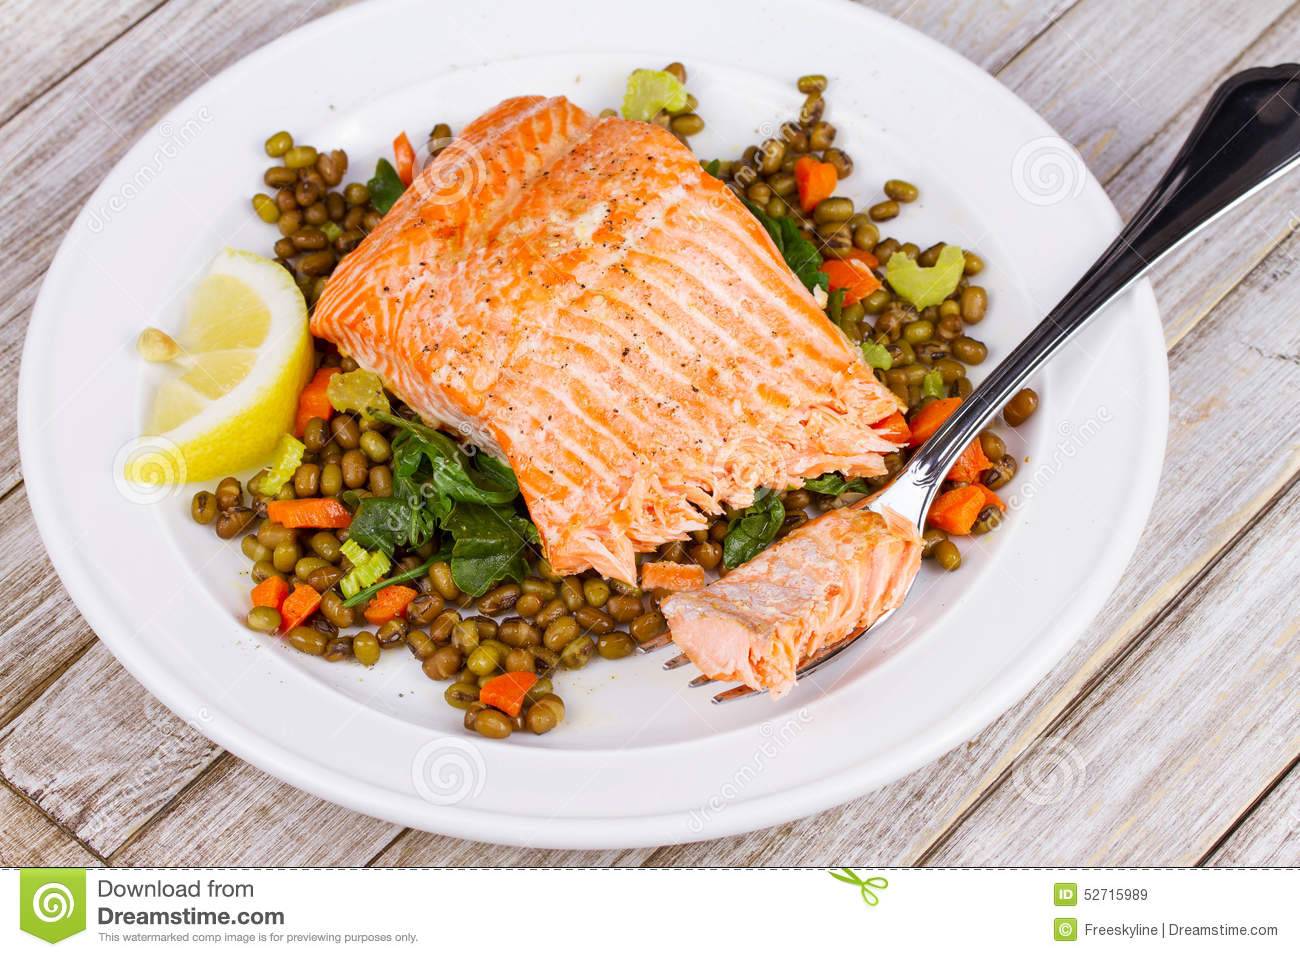 Steamed Salmon with Lentils and Arugula.